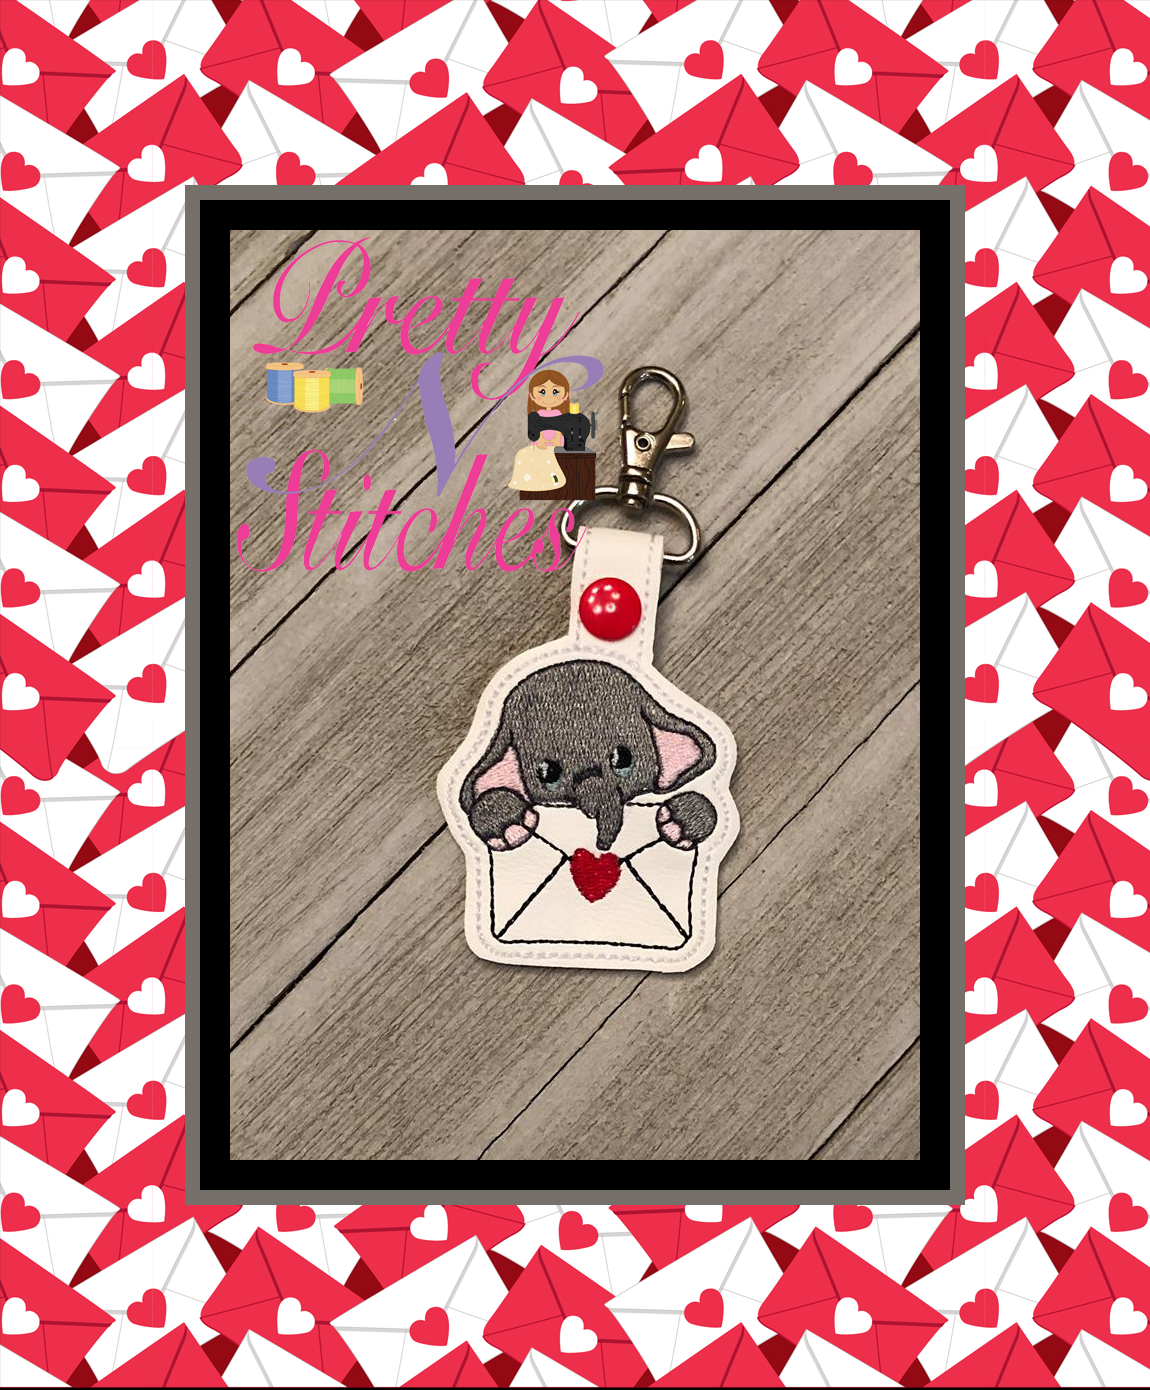 The Hoop Embroidery Designs Valentine Envelope Elephant Key Fob Design size 3.72X3.72 and 2.2X4.5